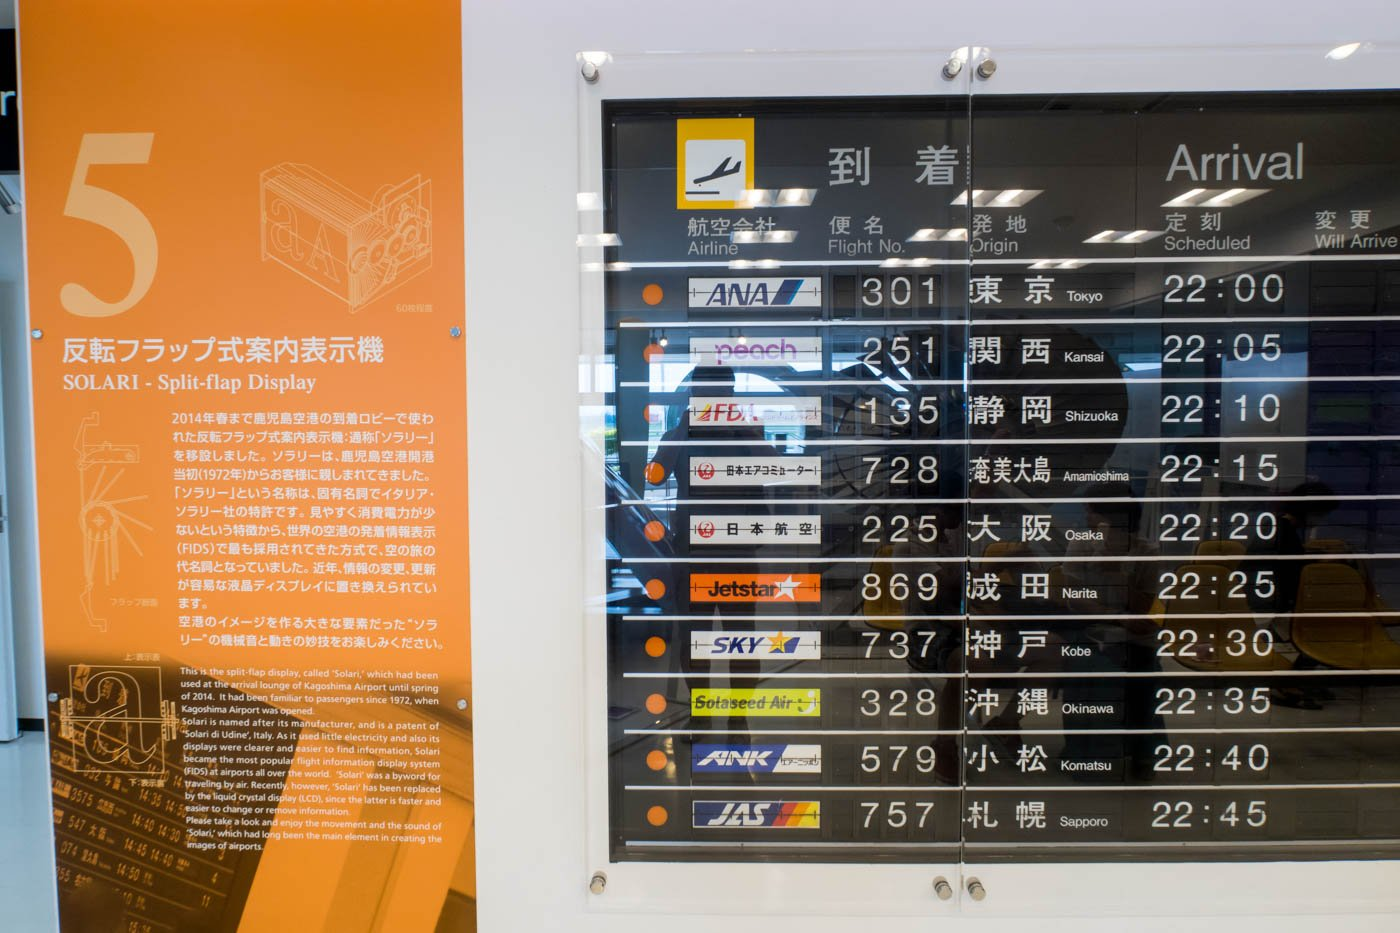 SOLARI Split-flap Display at Kagoshima Airport